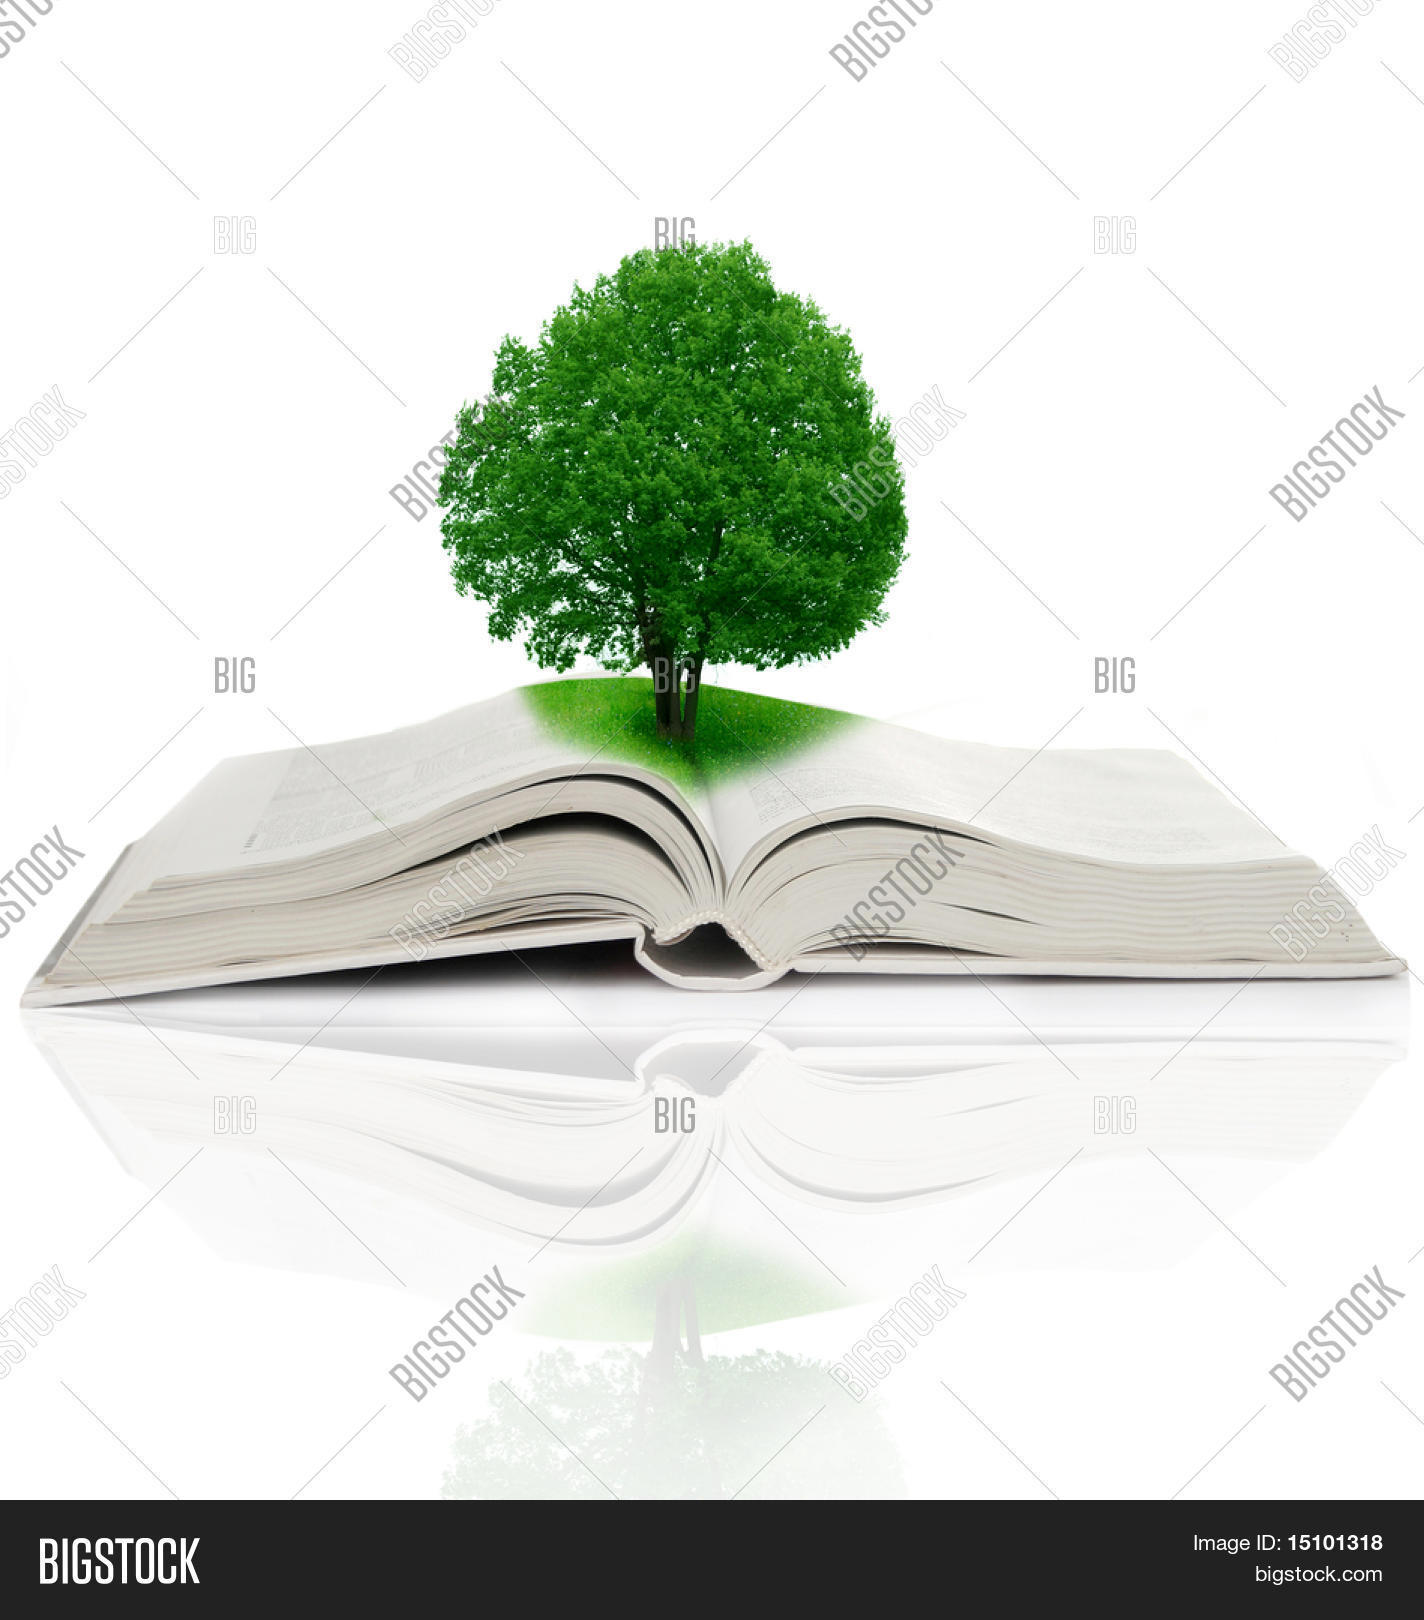 hight resolution of tree growing from a book